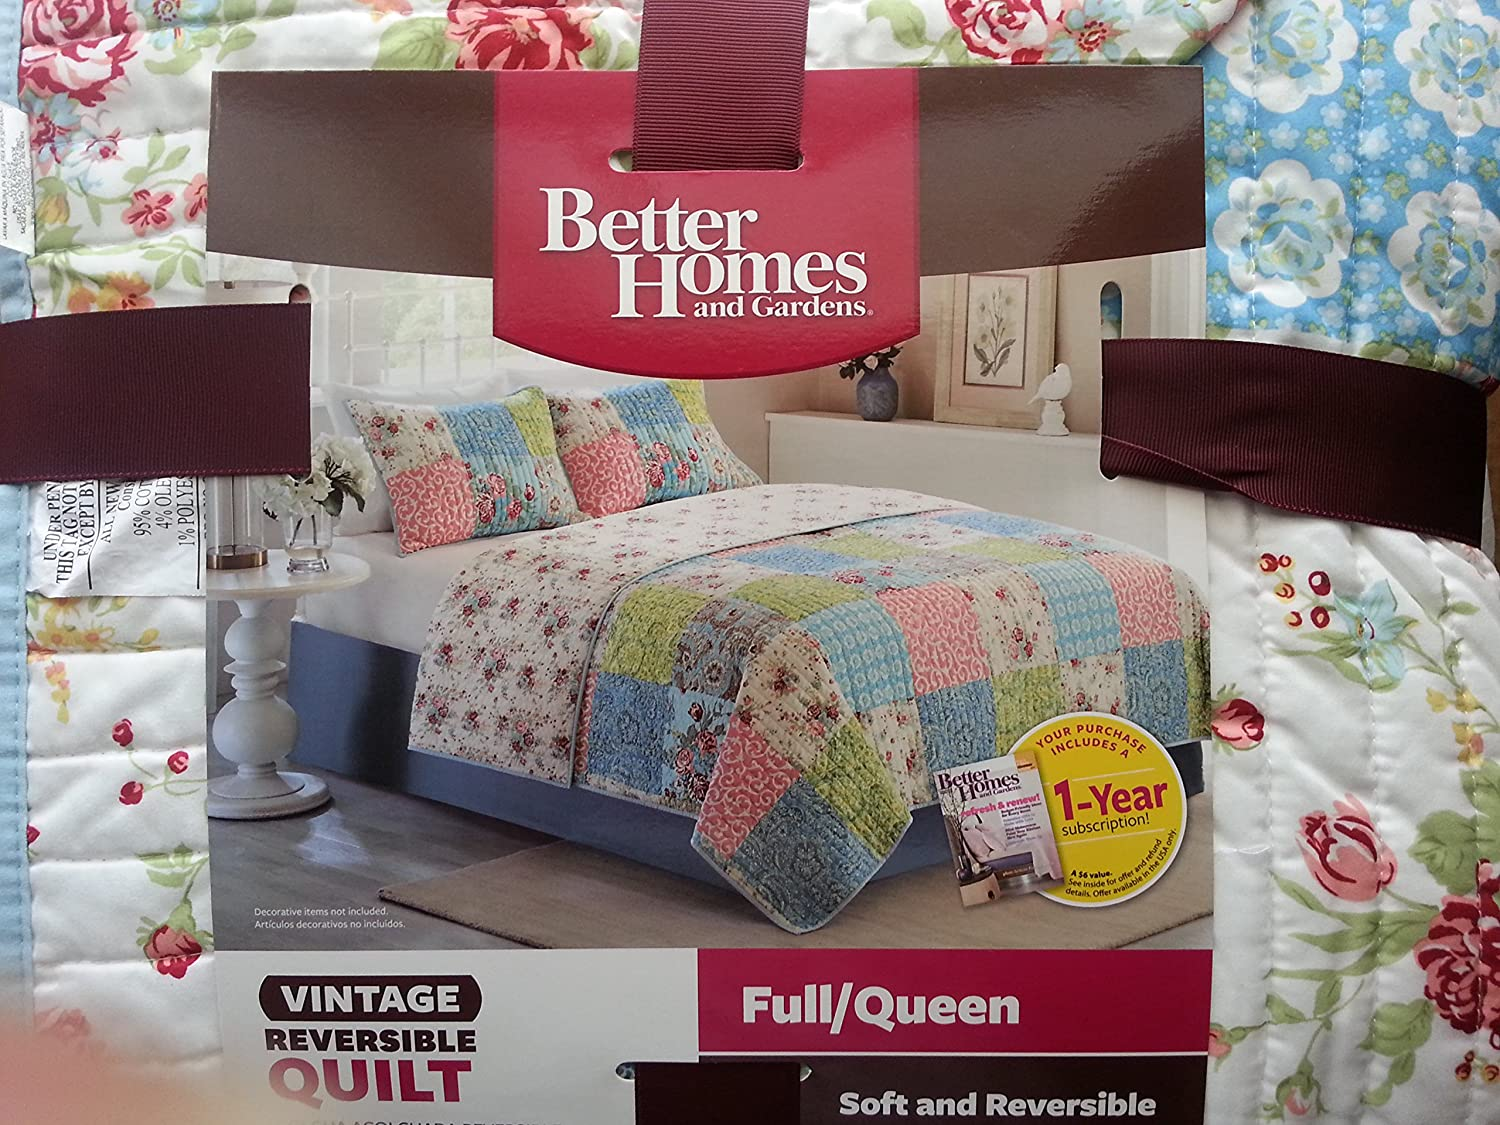 Better Homes and Gardens Multi-Color Vintage Bedding Quilt